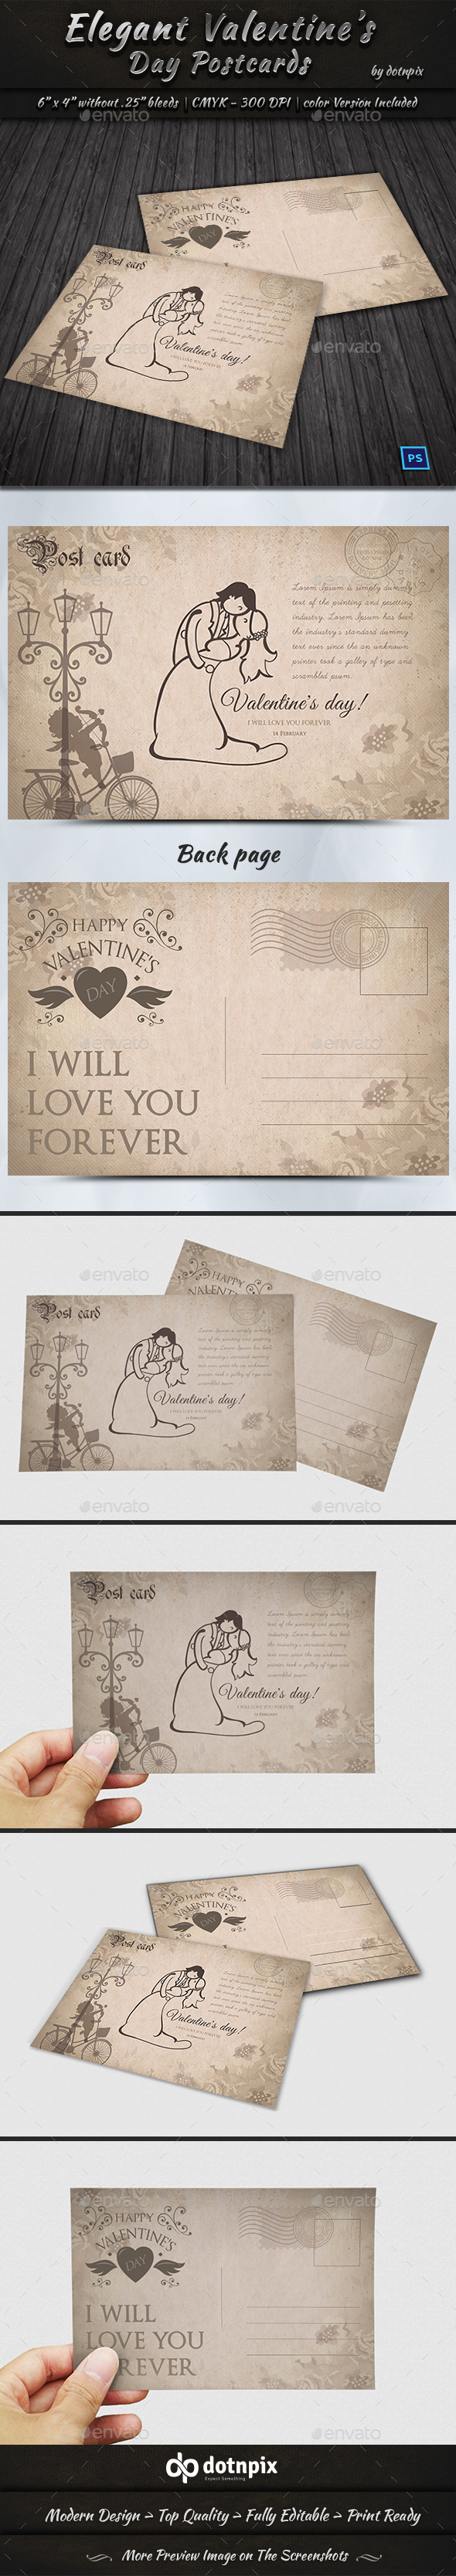 Elegant Valentine Day Postcard - Cards & Invites Print Templates